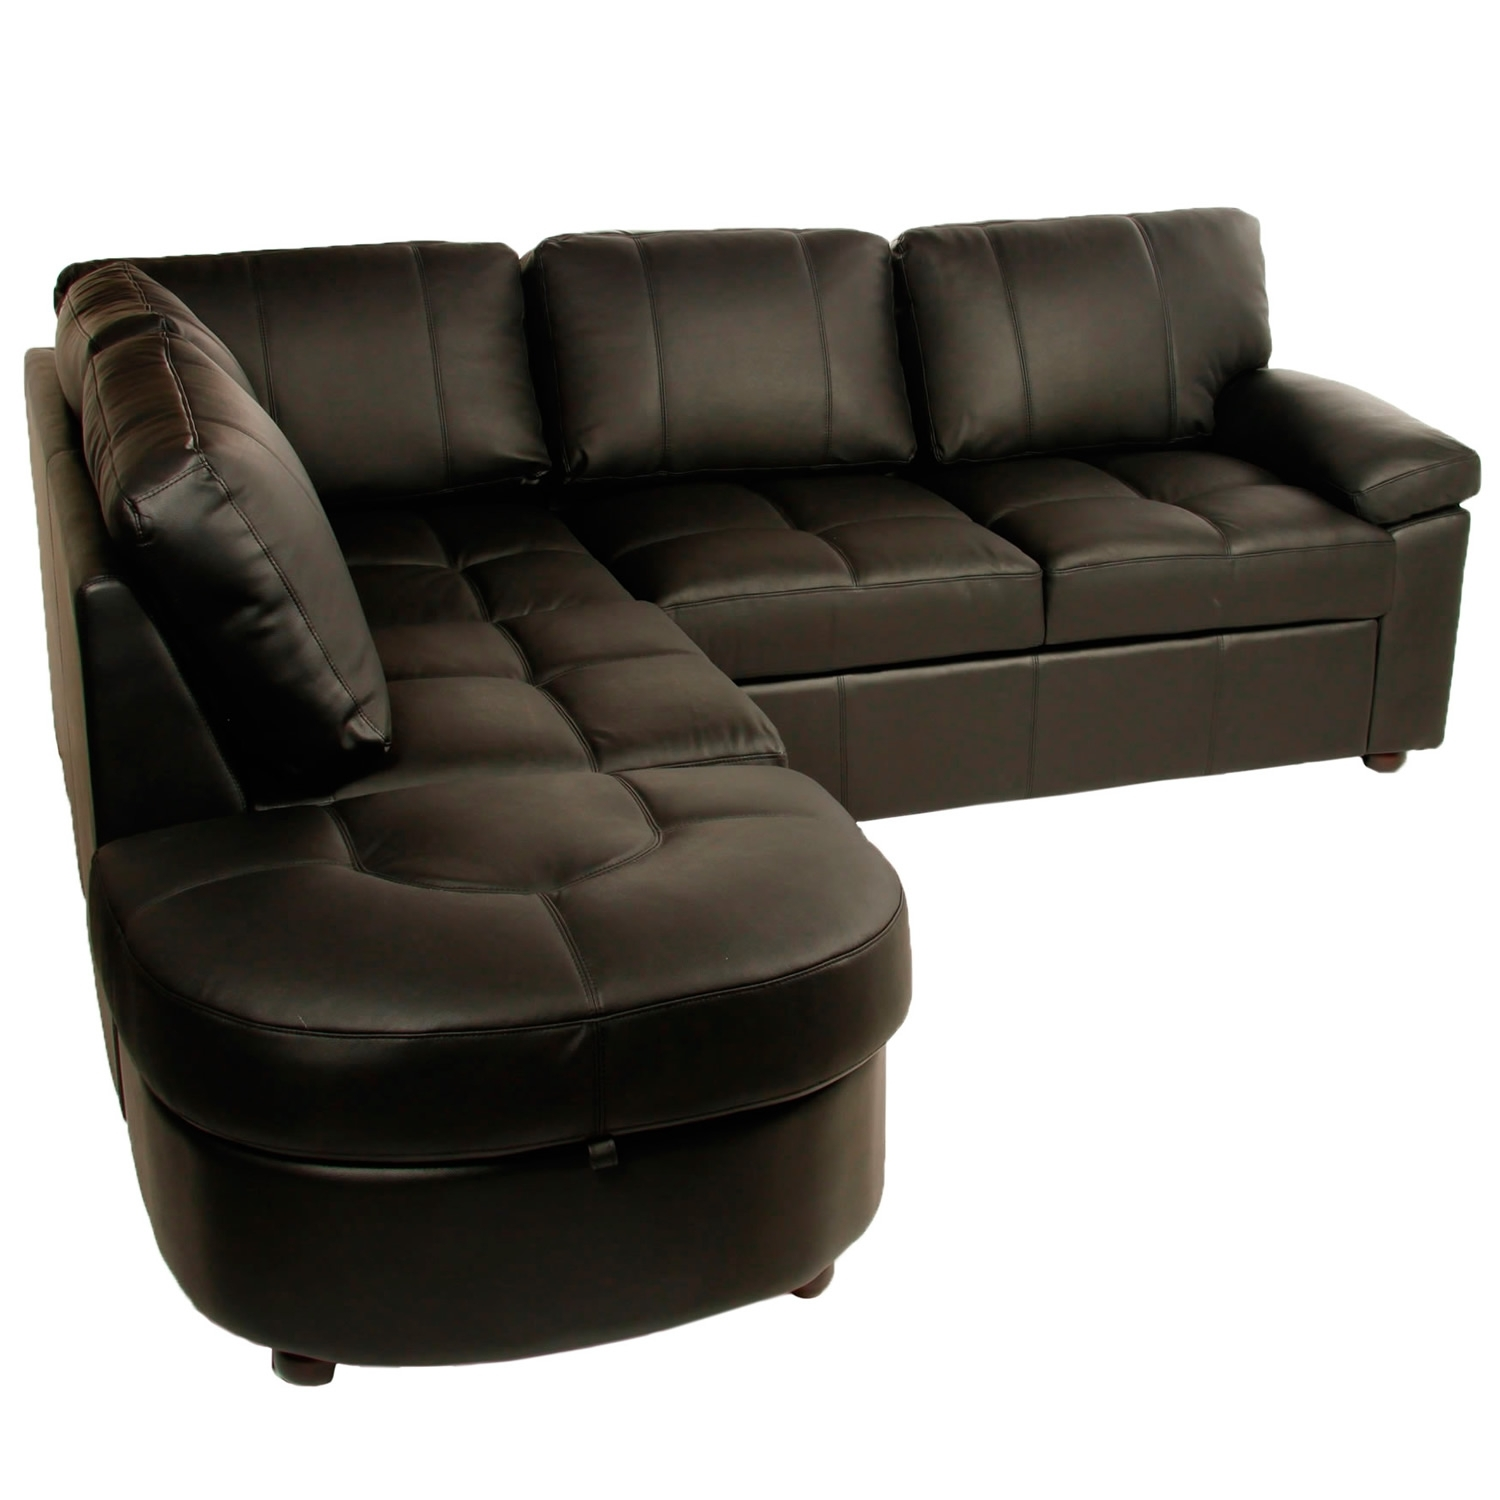 Lina Black Leather Corner Sofa Bed With Storage – Sofabedsworld (Image 5 of 10)